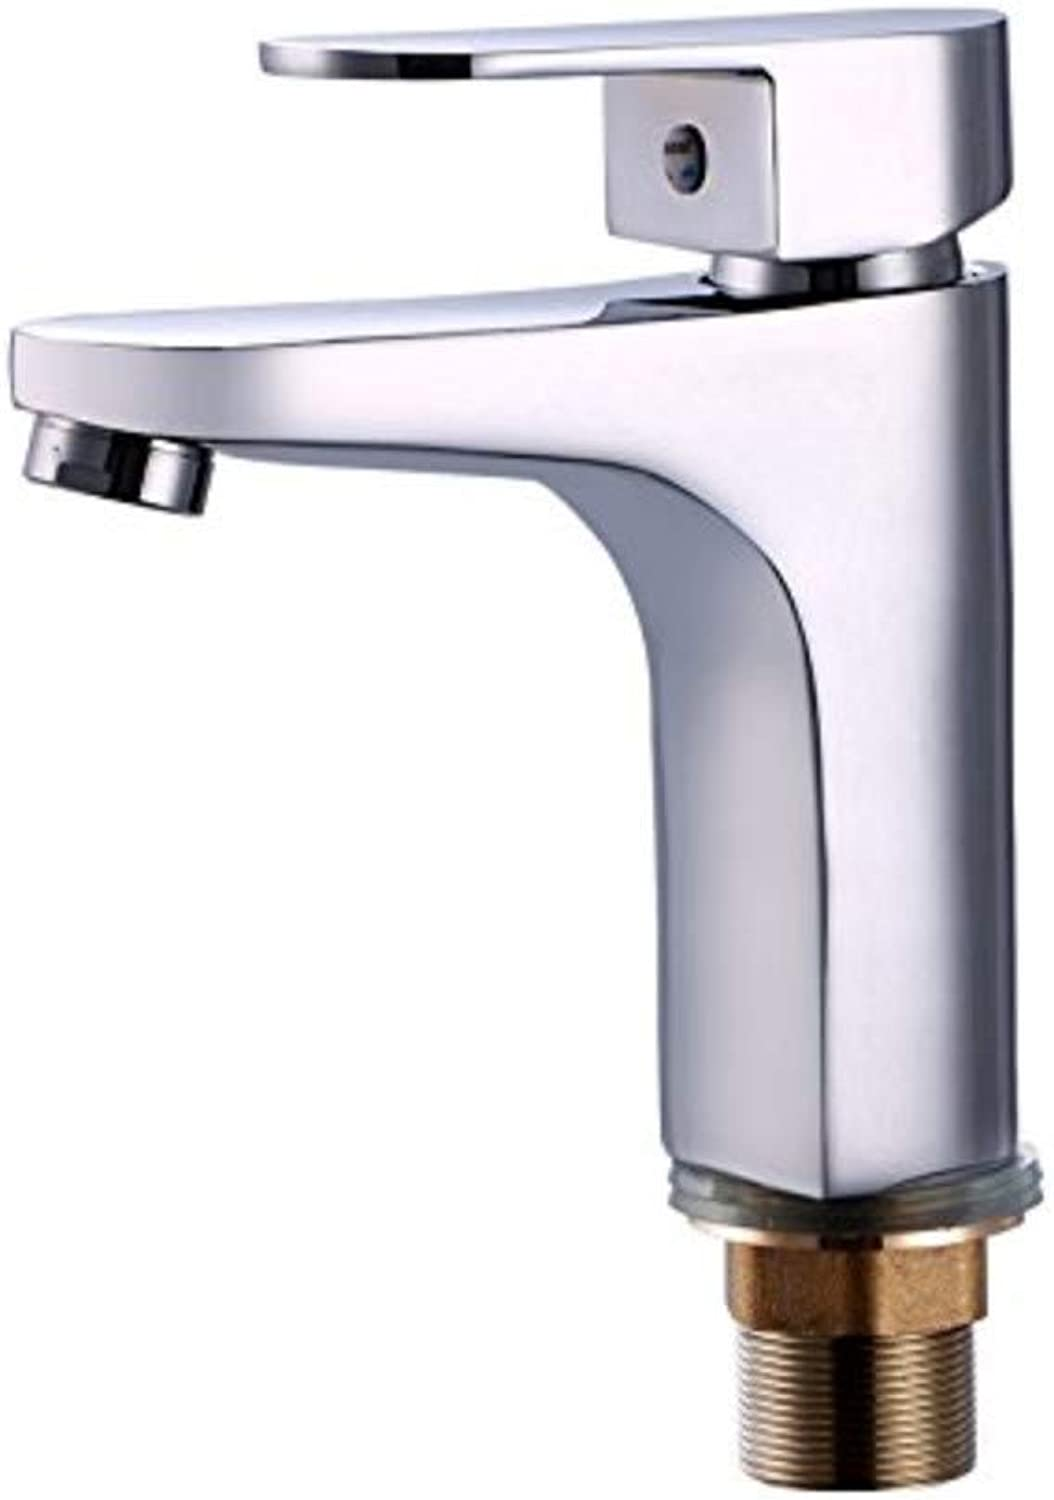 360° redating Faucet Retro Faucetsanitary Wares Copper Hot and Cold Washbasin High Quality Faucet